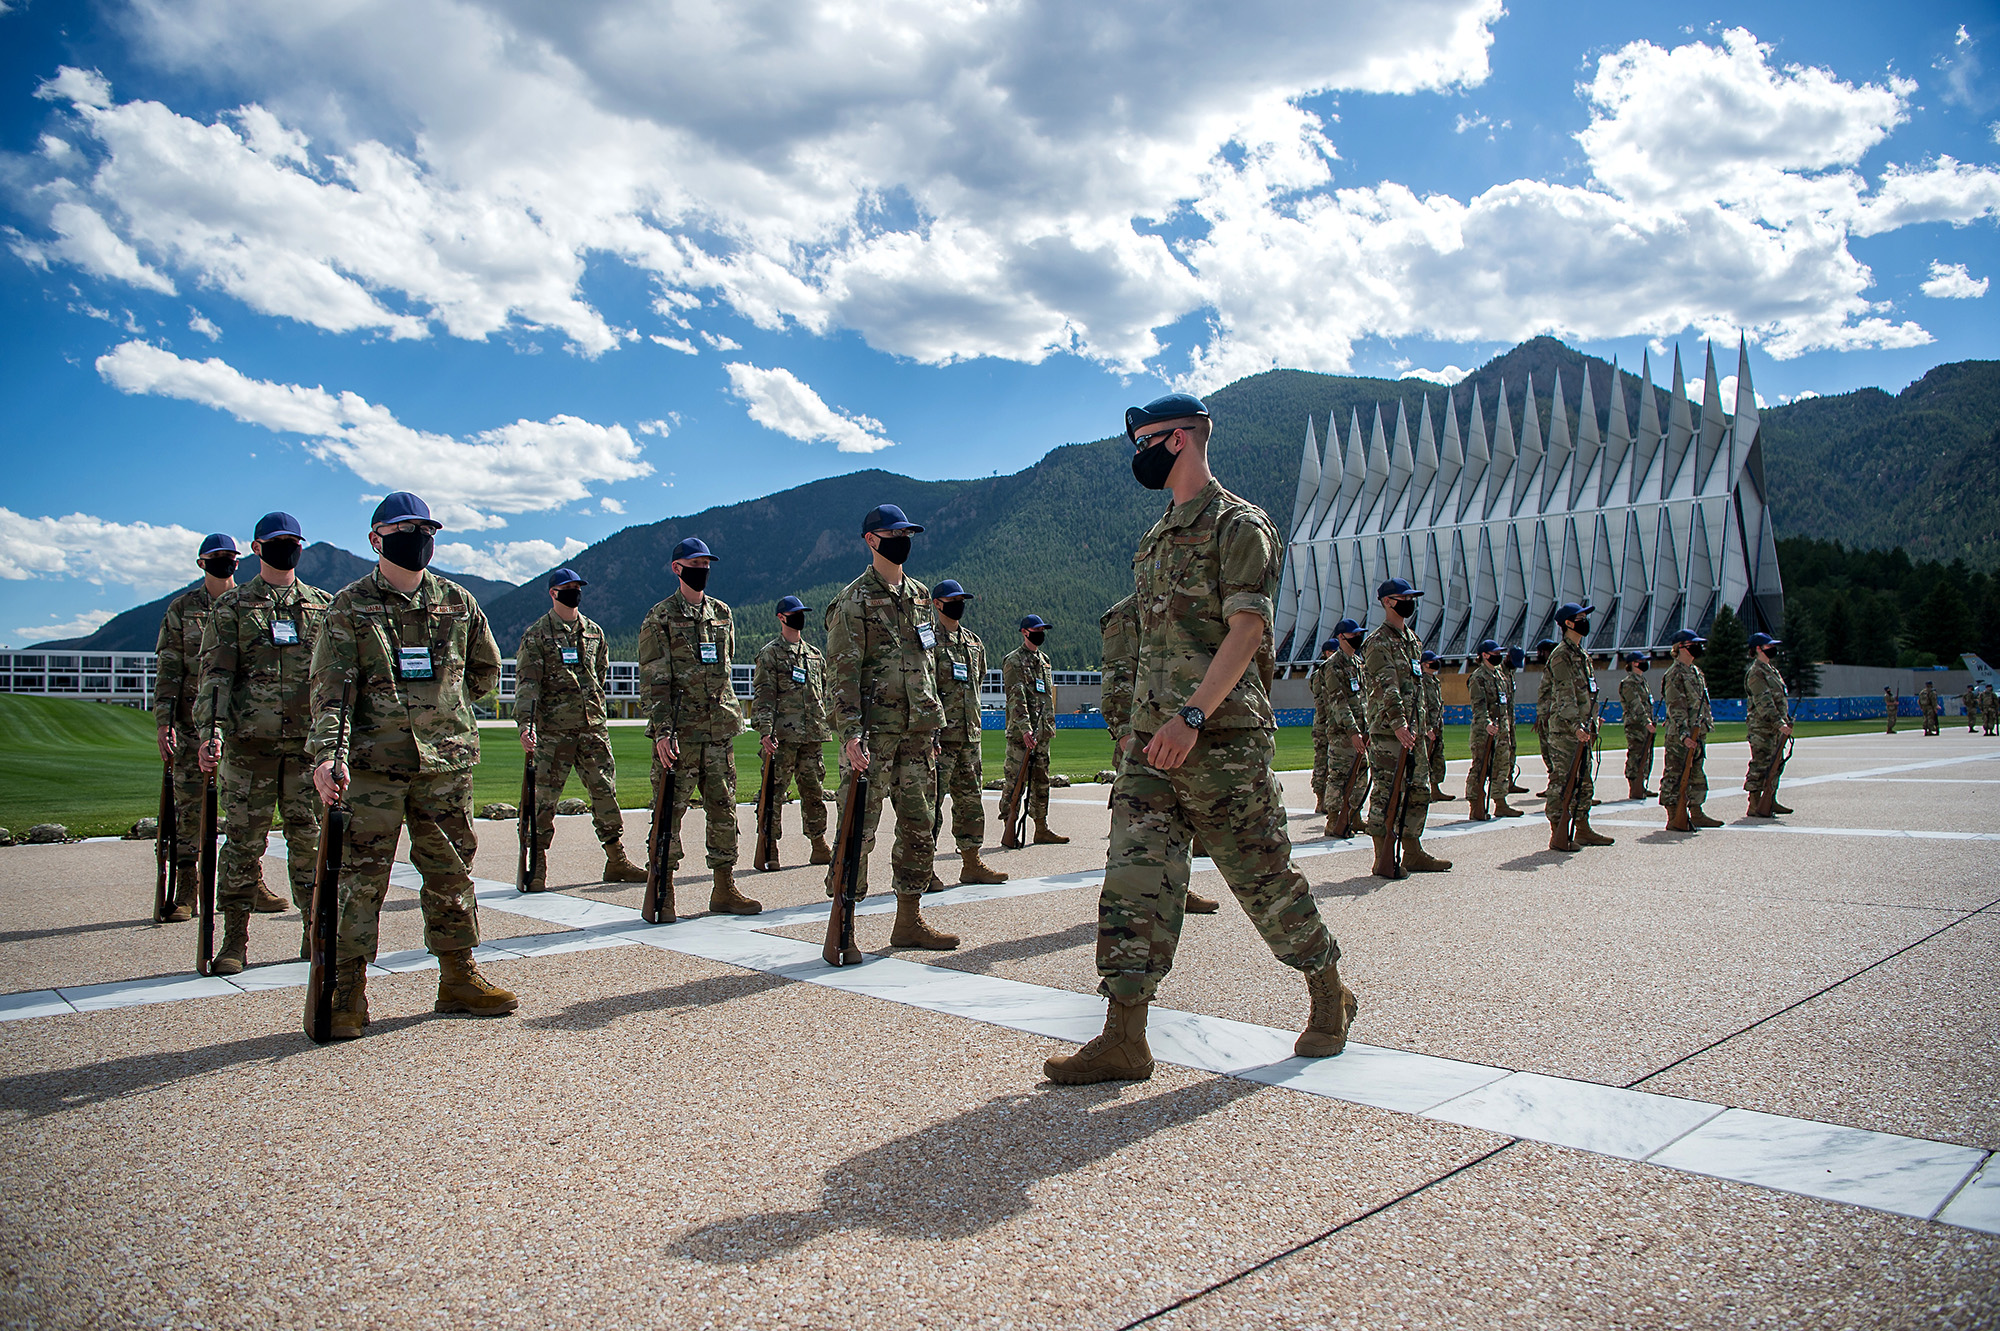 Academy basic cadets participate in the first phase of basic cadet training with marching drills onJuly 8, 2020, onthe Terrazzo at the U.S. Air Force Academy in Colorado. (Trevor Cokley/Air Force)